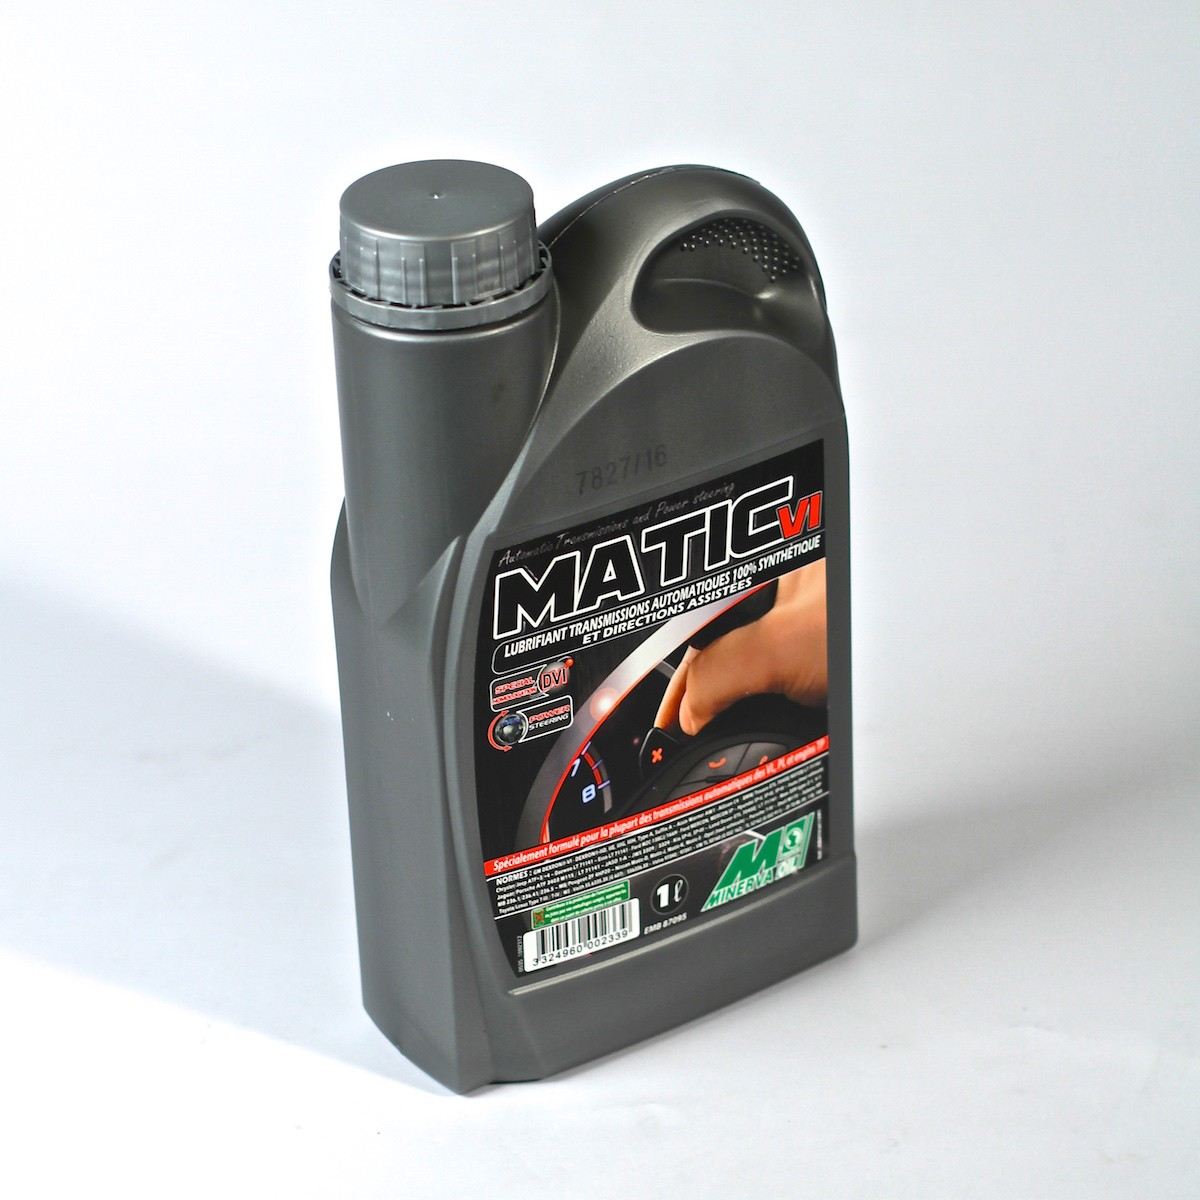 Minerva Sythetic Oil for Auto Transmissions and Power steering 1L